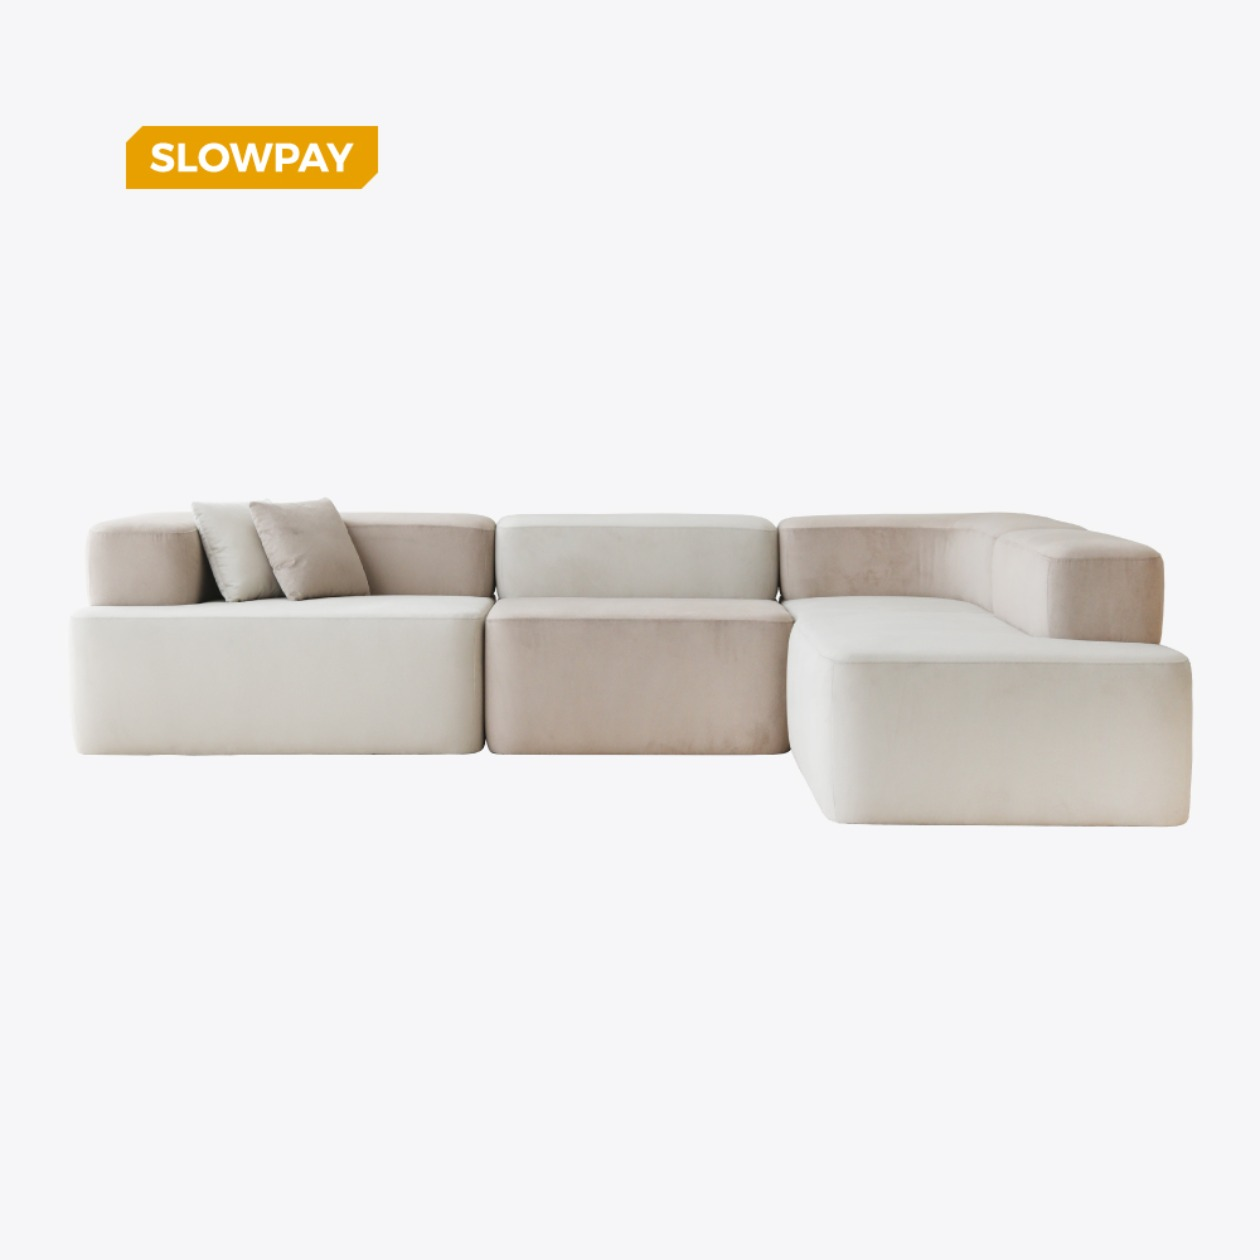 [SLOW PAY] ABLE SOFA A1+B+C+D